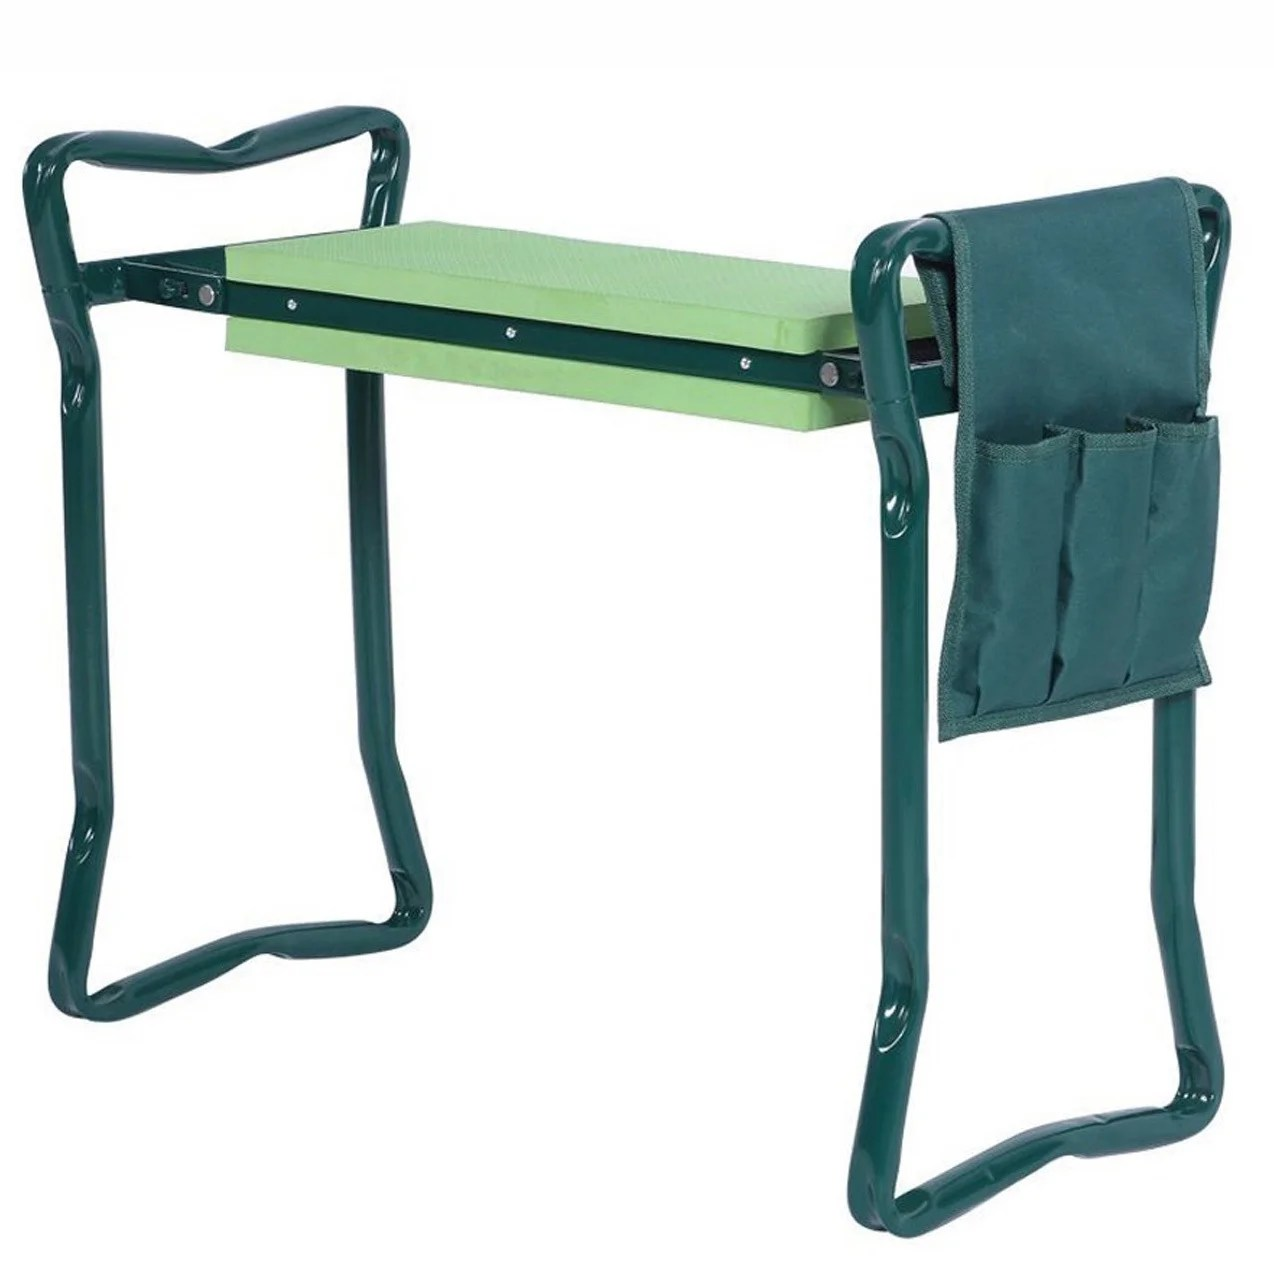 Shop Foldable Garden Kneeler Portable Garden Stool With Tool Pouch Thick Eva Pad Handles And Seat Overstock 12306141